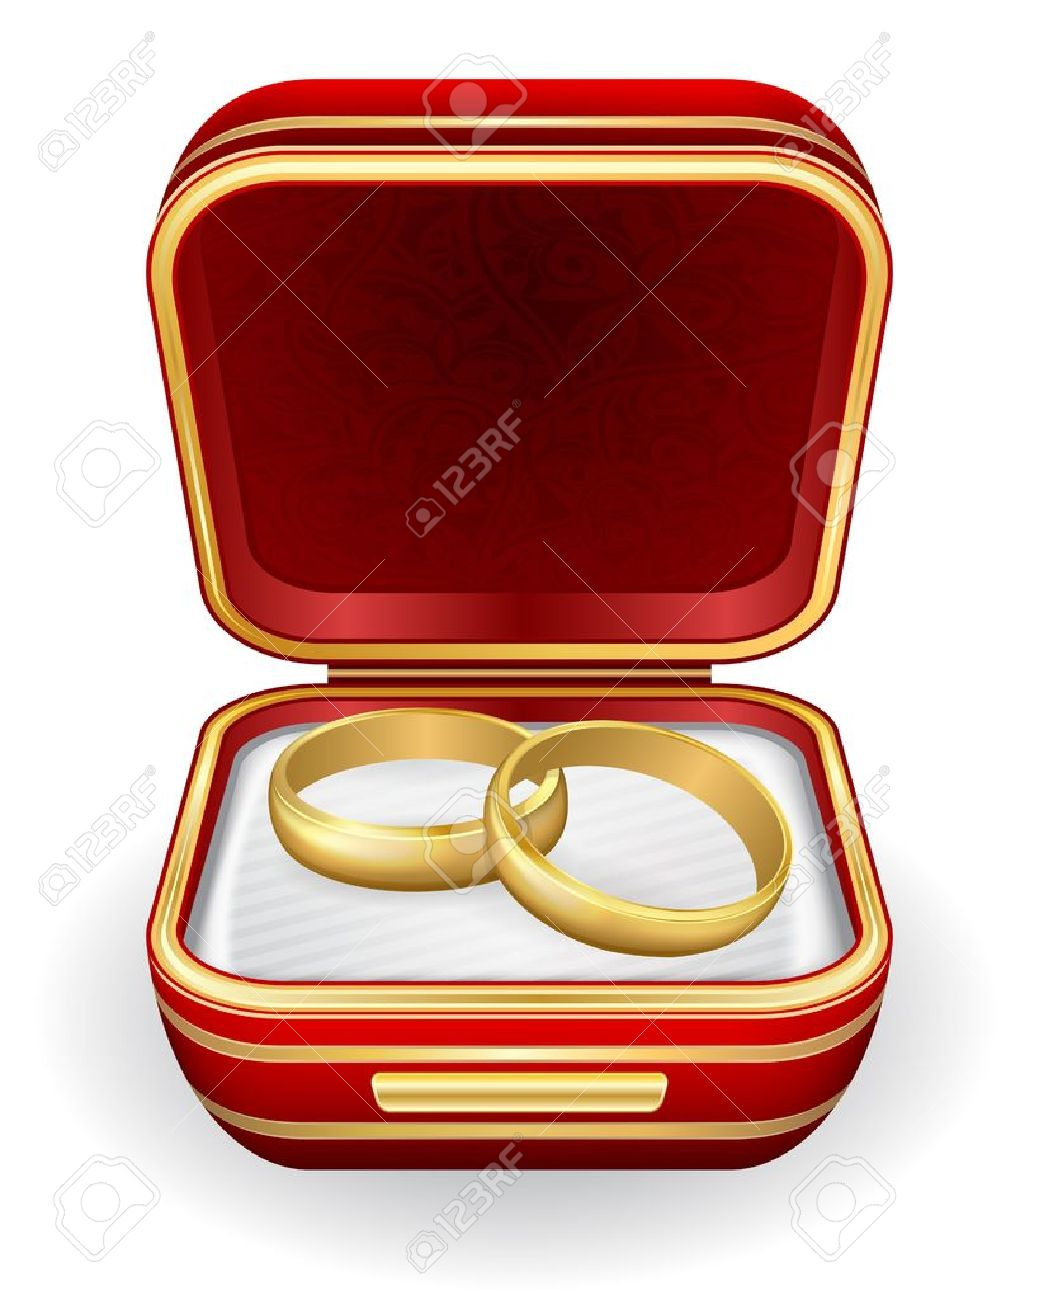 Gold Wedding Rings In Red Box Stock Vector  12365015